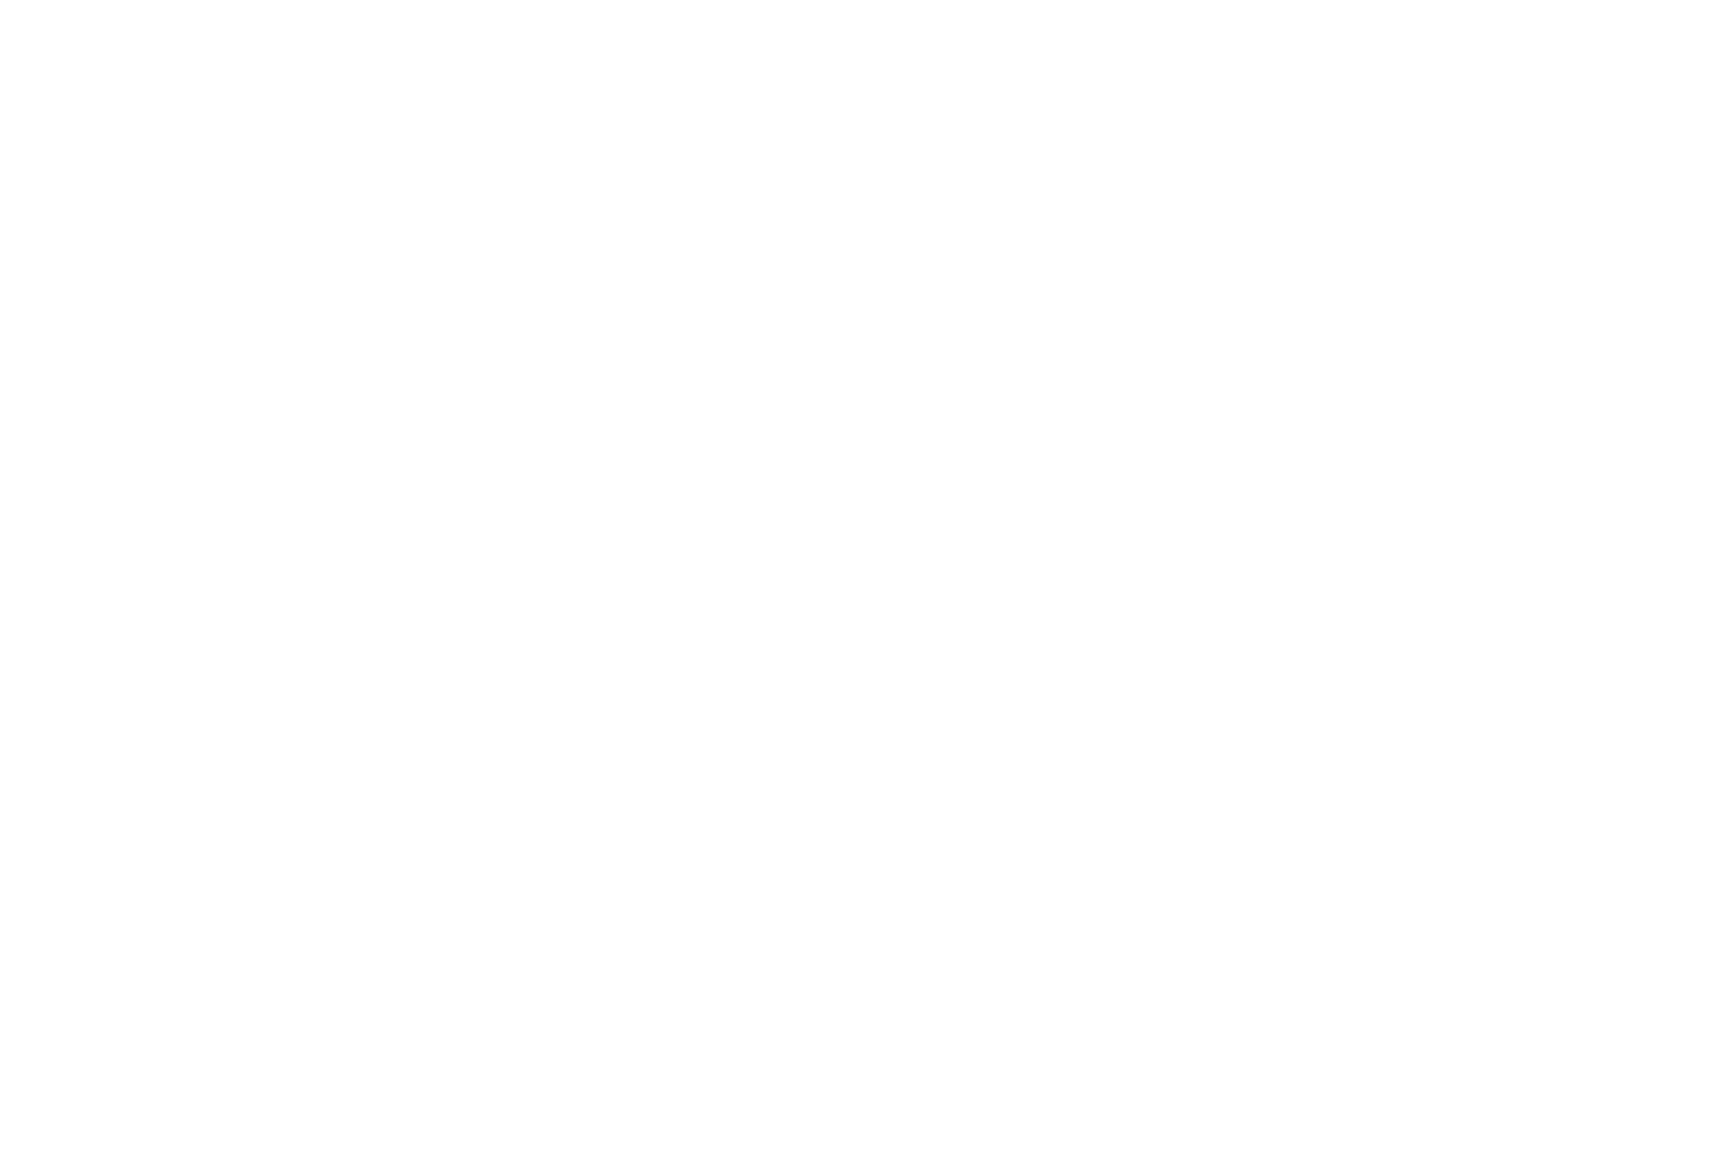 SEMI-FINALIST - Los Angeles Film Awards - 2020